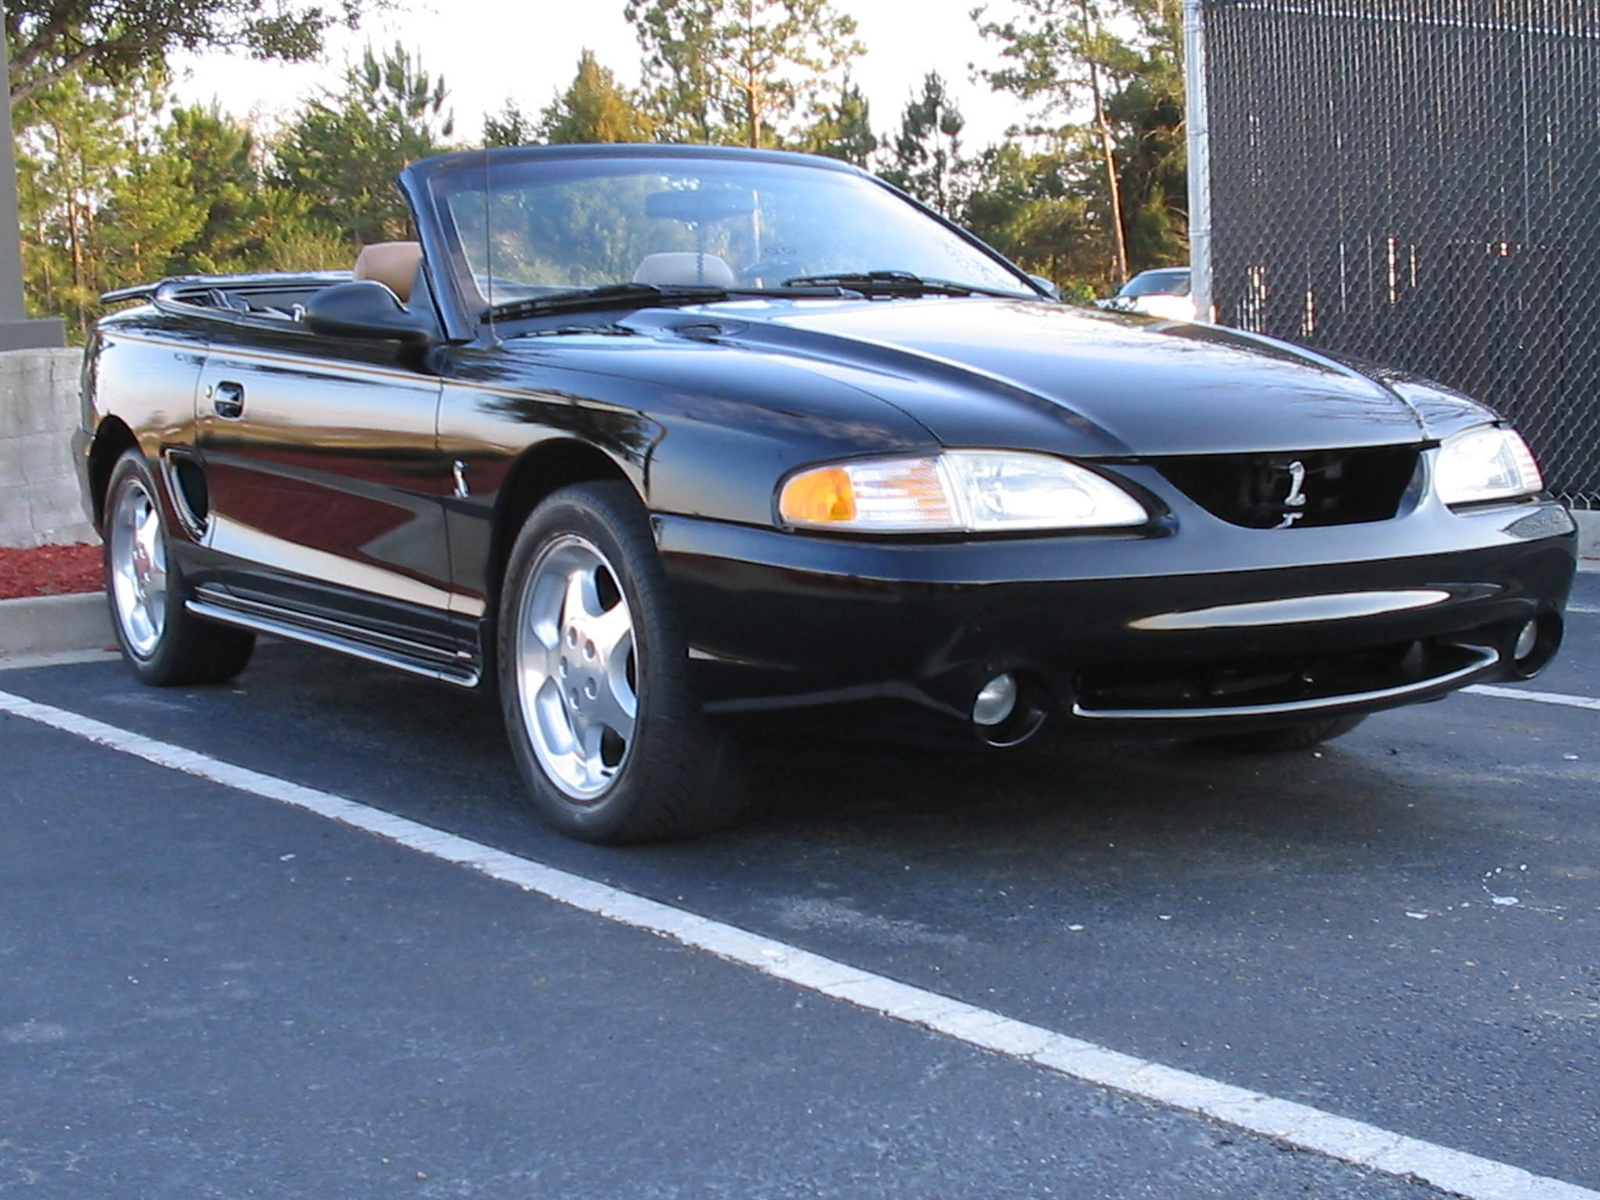 1995 ford mustang svt cobra pictures cargurus. Black Bedroom Furniture Sets. Home Design Ideas